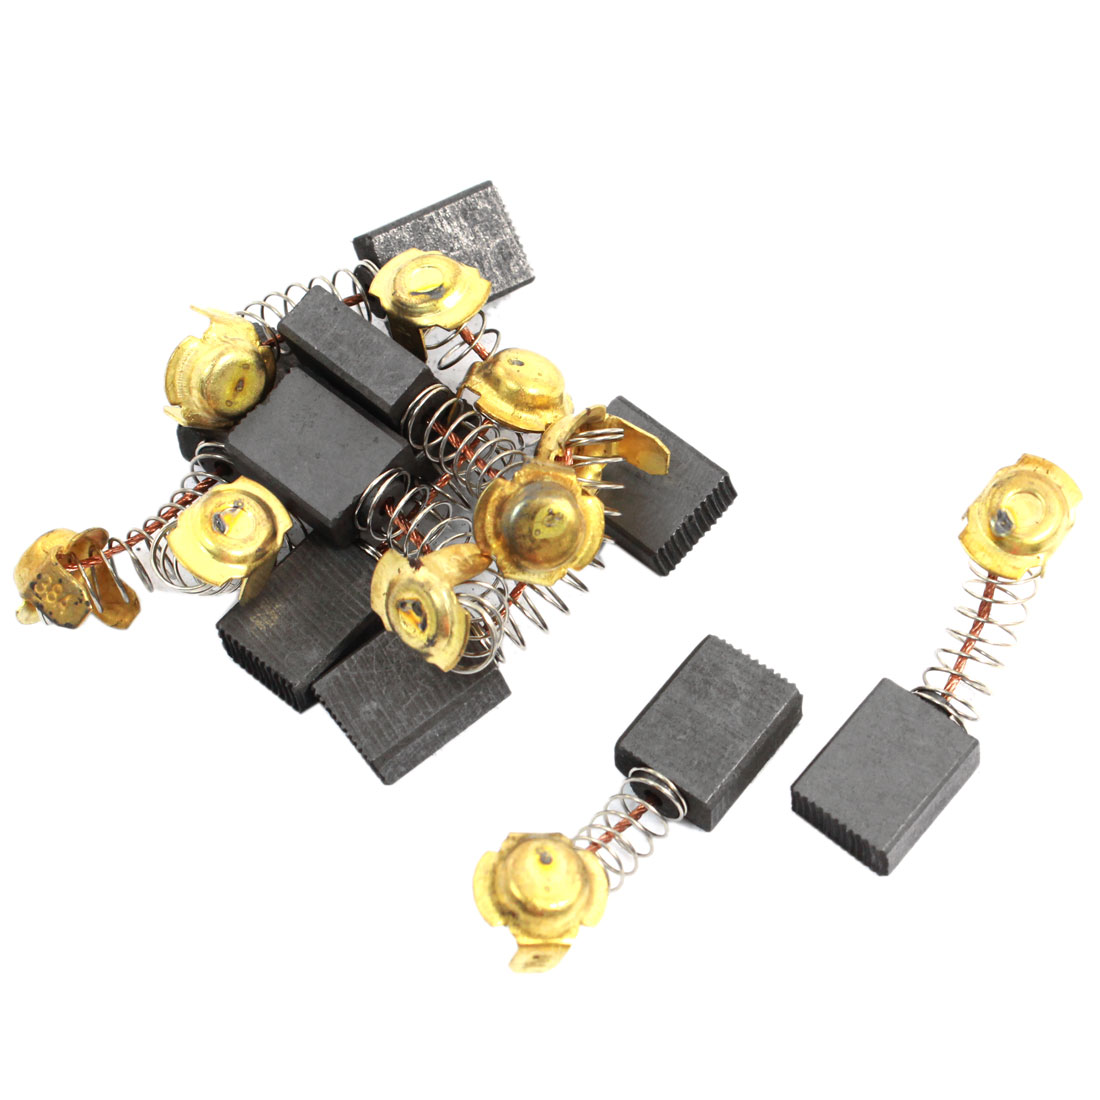 10 Pcs Spare Part Electric Drill Motor 16mm x 13mm x 7mm Carbon Brushes